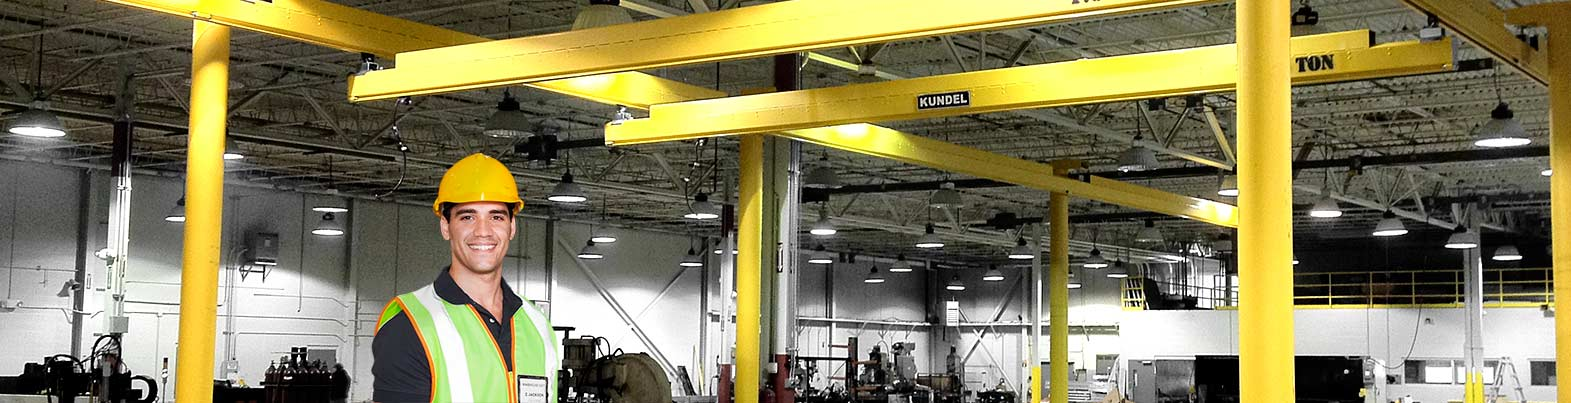 https://kundelcranes.com/sites/default/files/revslider/image/kundel-overhead_cranes-jibs-intelligent_lifting_devices-support-header.jpg